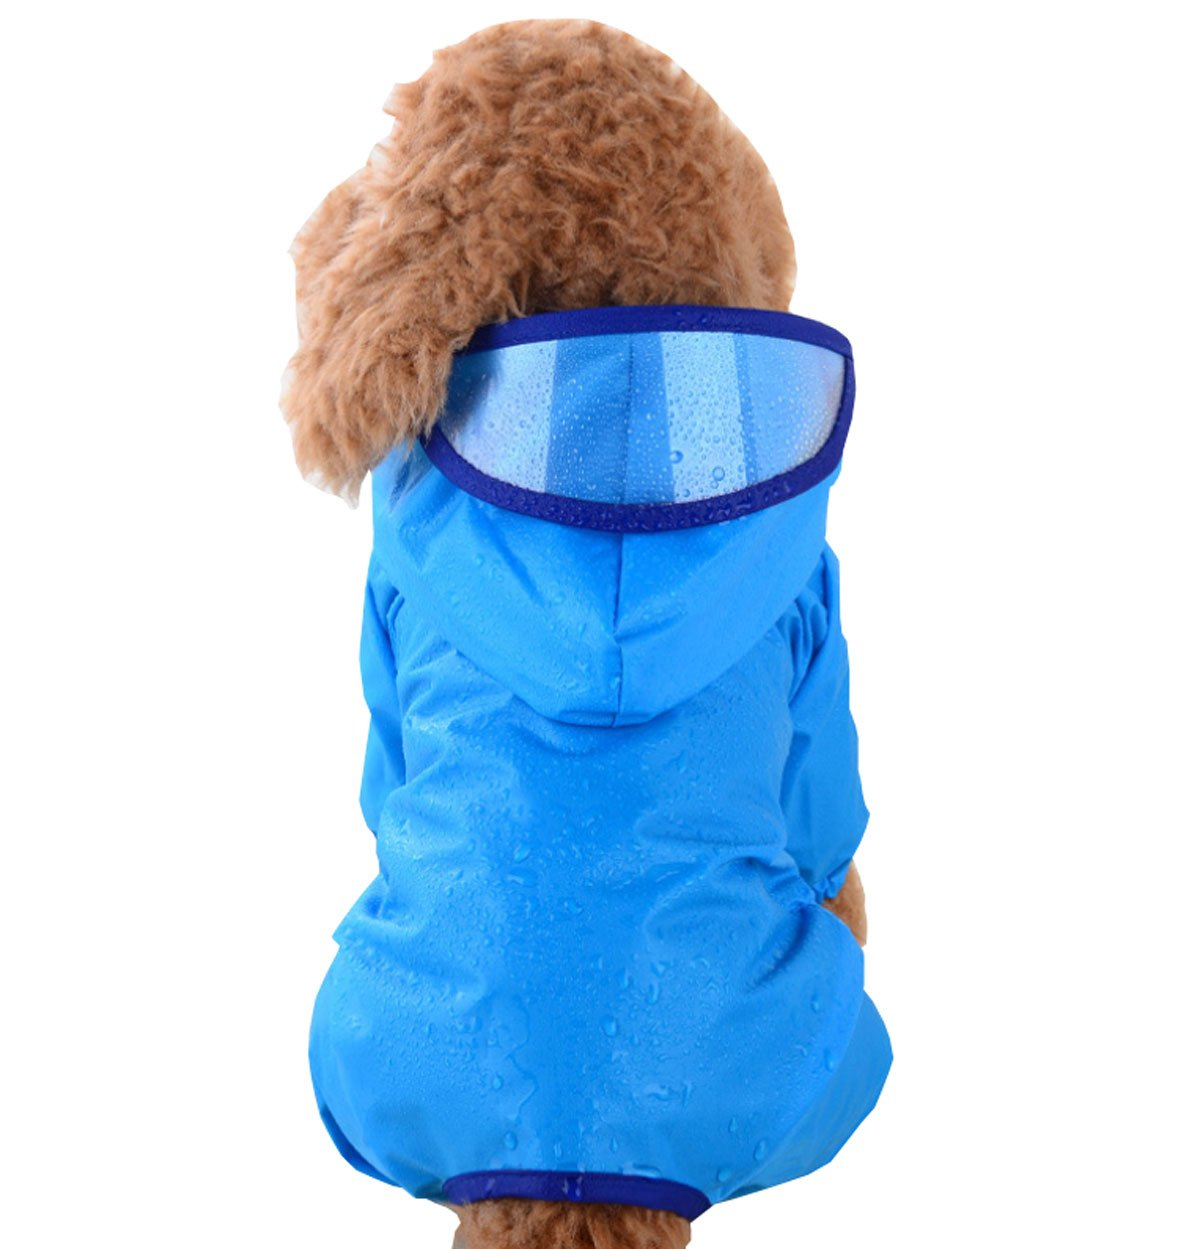 bluee M 2.5-3.5kg(Wight) bluee M 2.5-3.5kg(Wight) Sichyuan Waterproof Pet Raincoat Poncho Foldable Dog Four Feet Hoodie Raincoat 4 Sizes 4 colors Fit for Medium Large Pets.